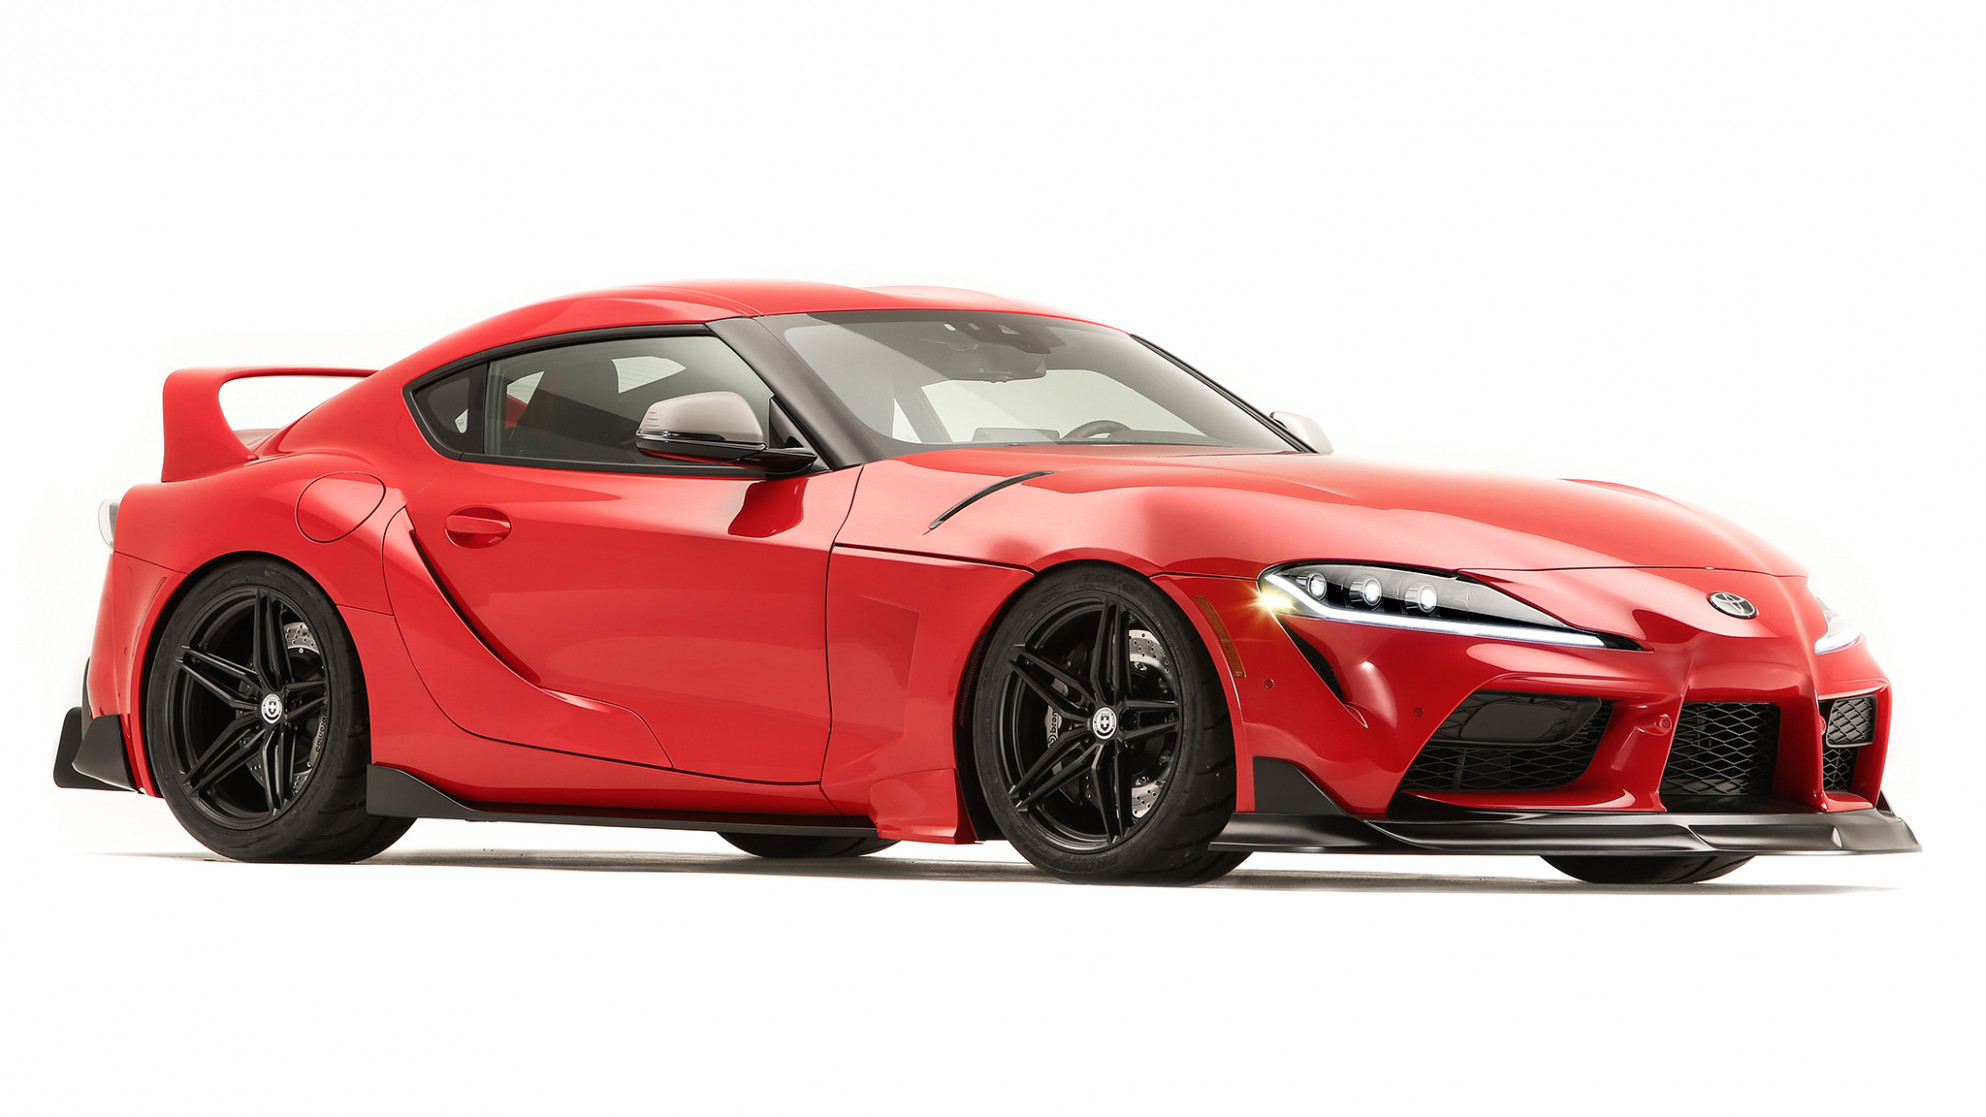 Review Pictures Of The 2022 Toyota Supra